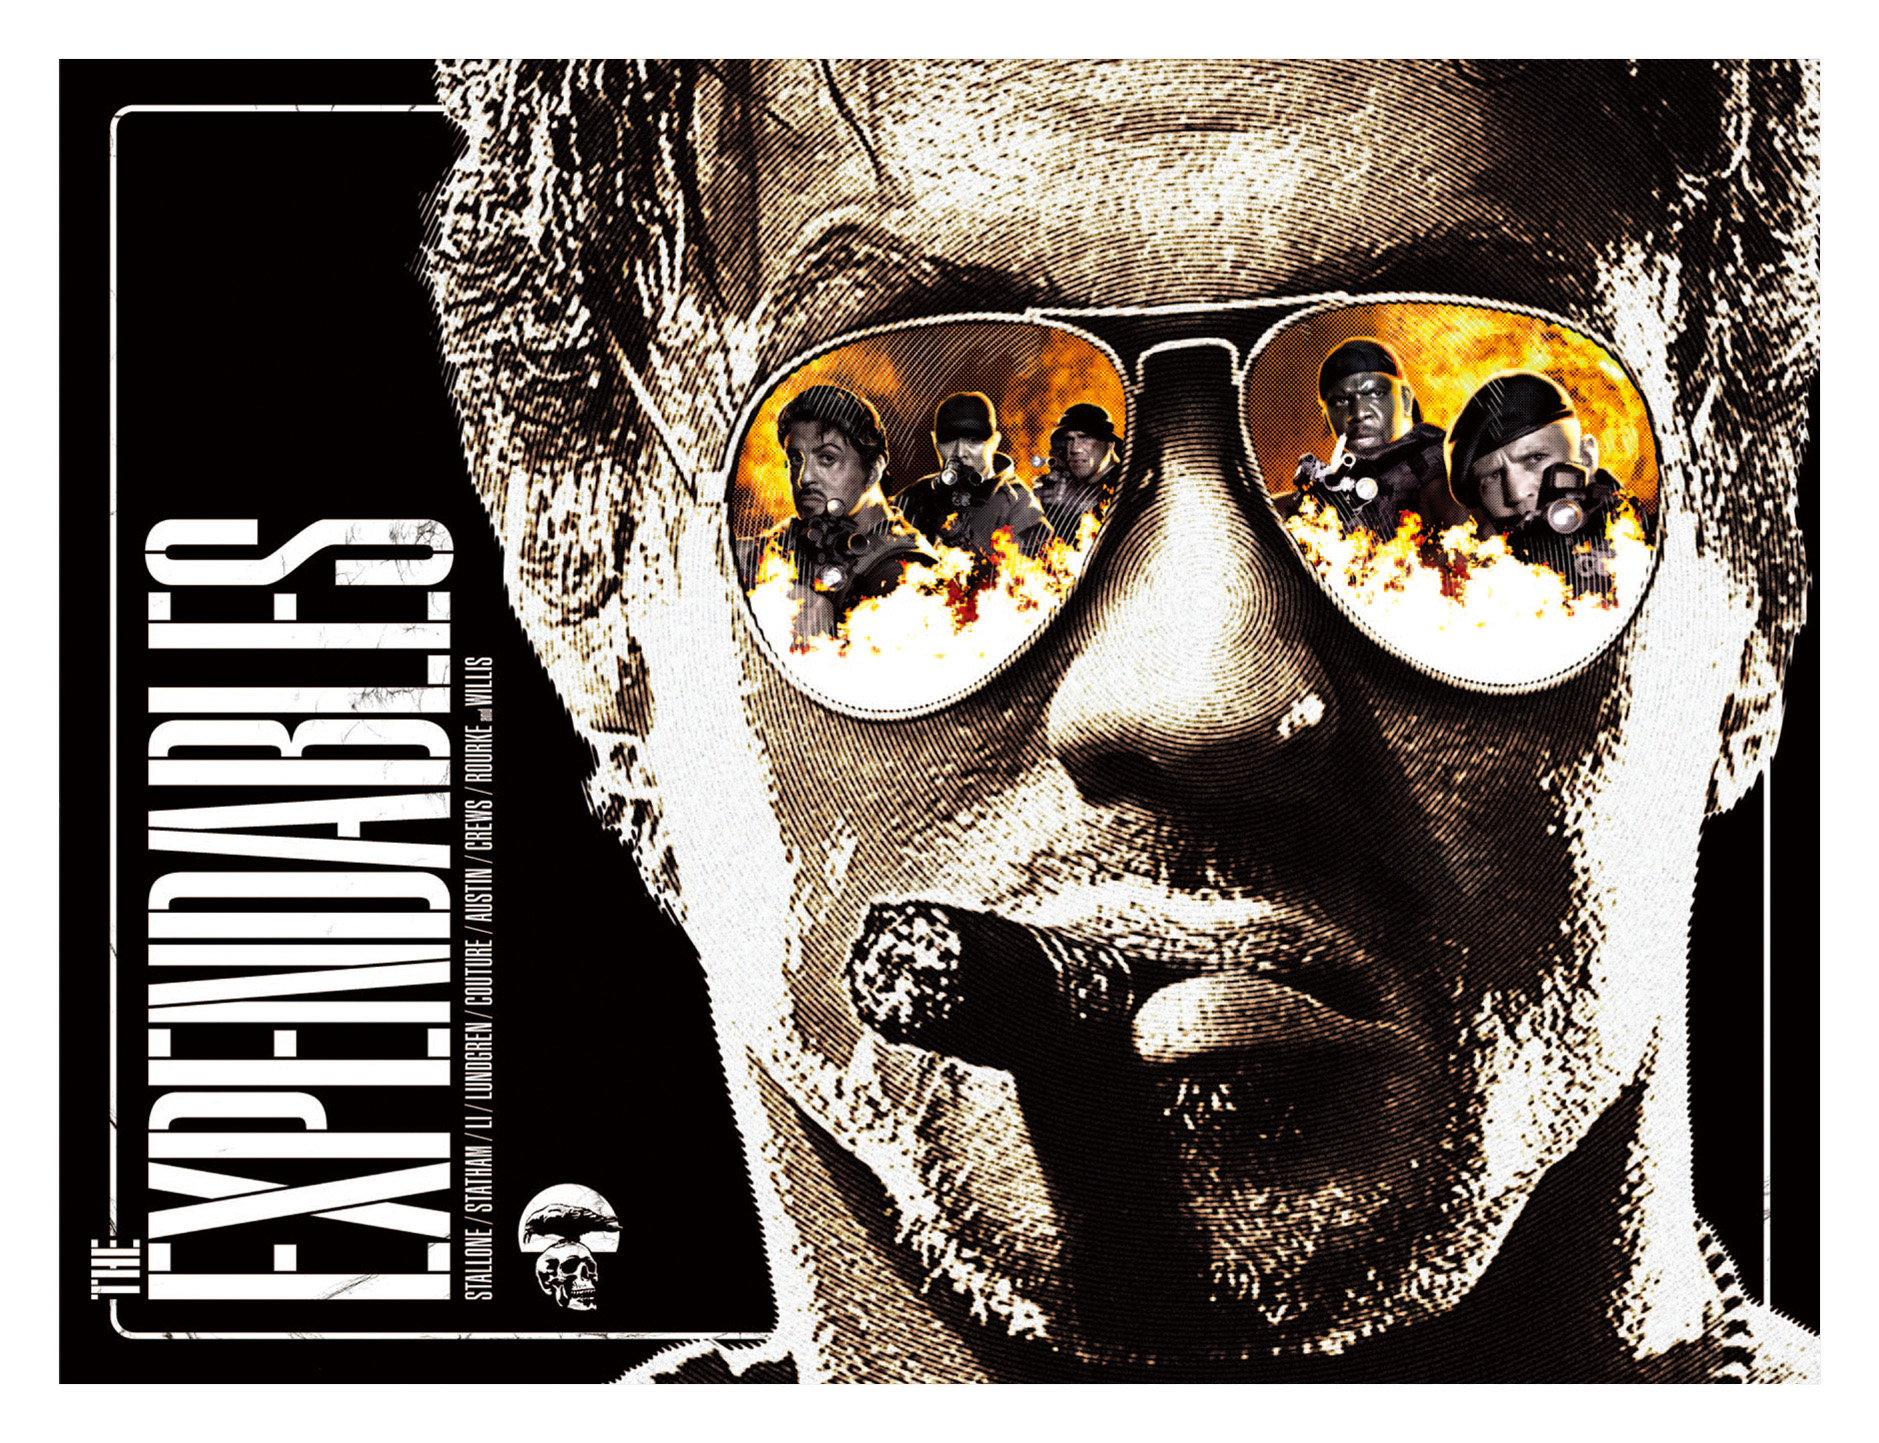 THE EXPENDABLES 劇場パンフレット 表紙デザイン